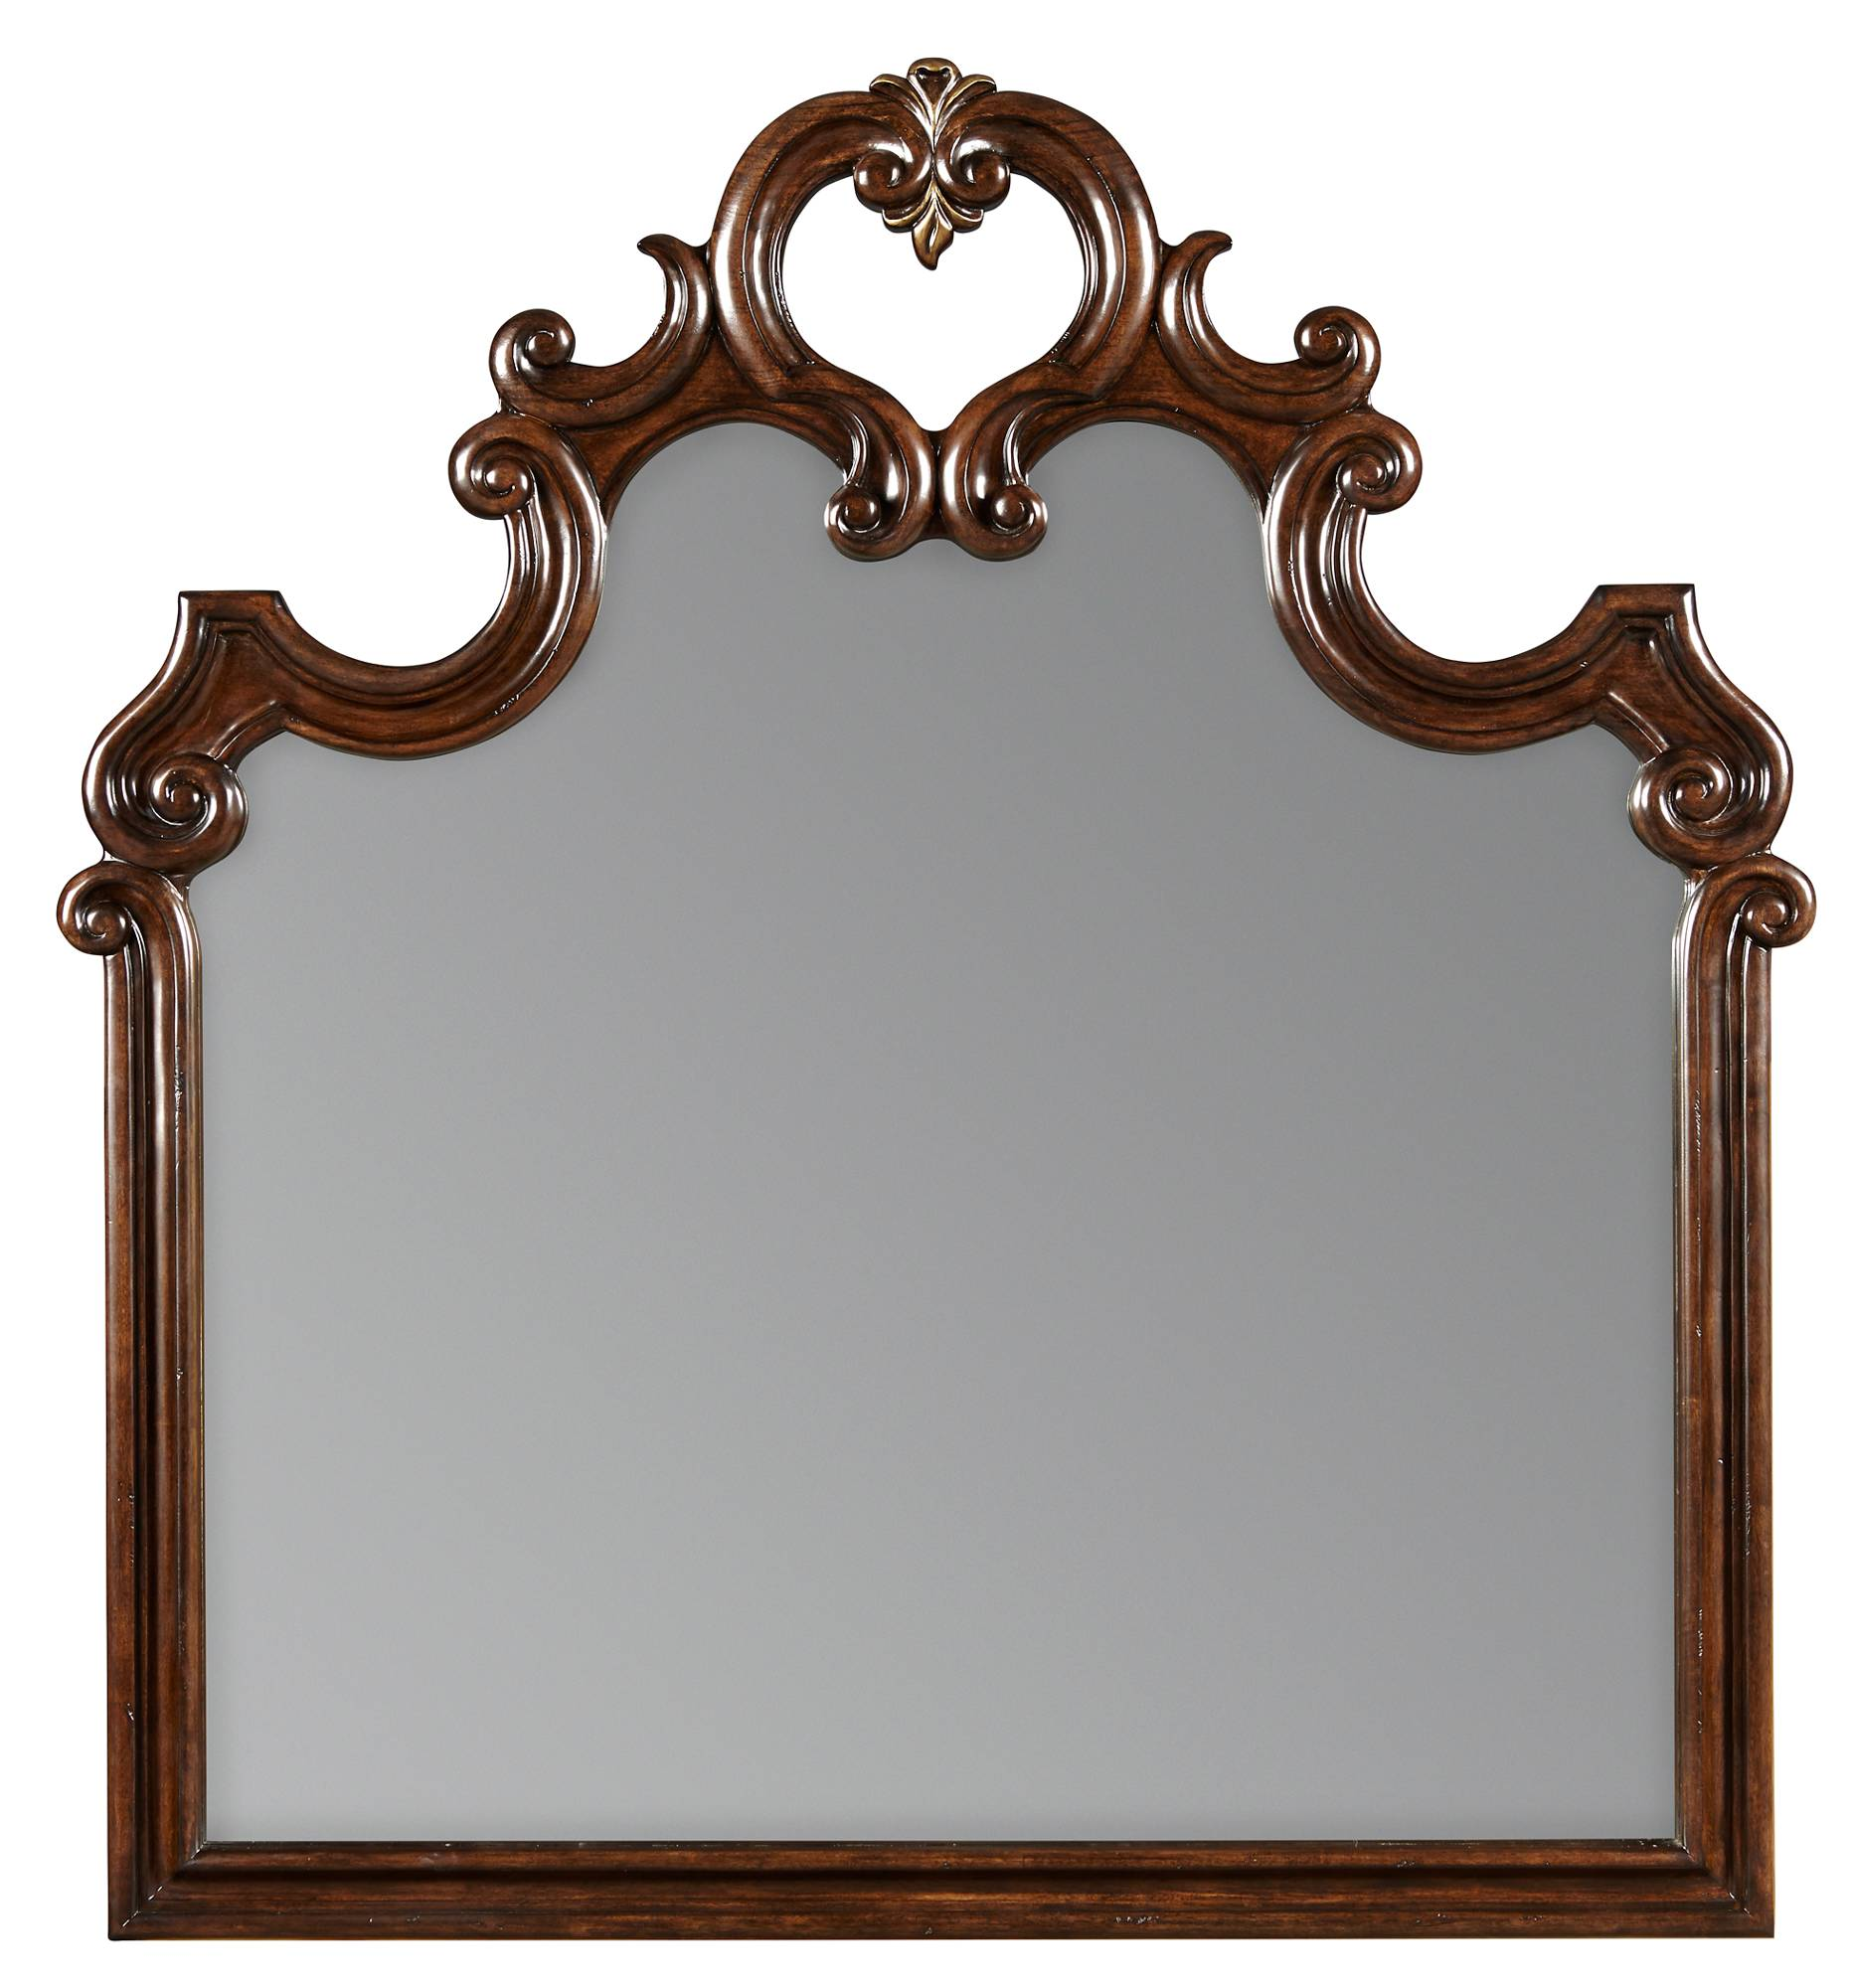 Stanley Furniture Casa D'Onore Mirror - Item Number: 443-13-30